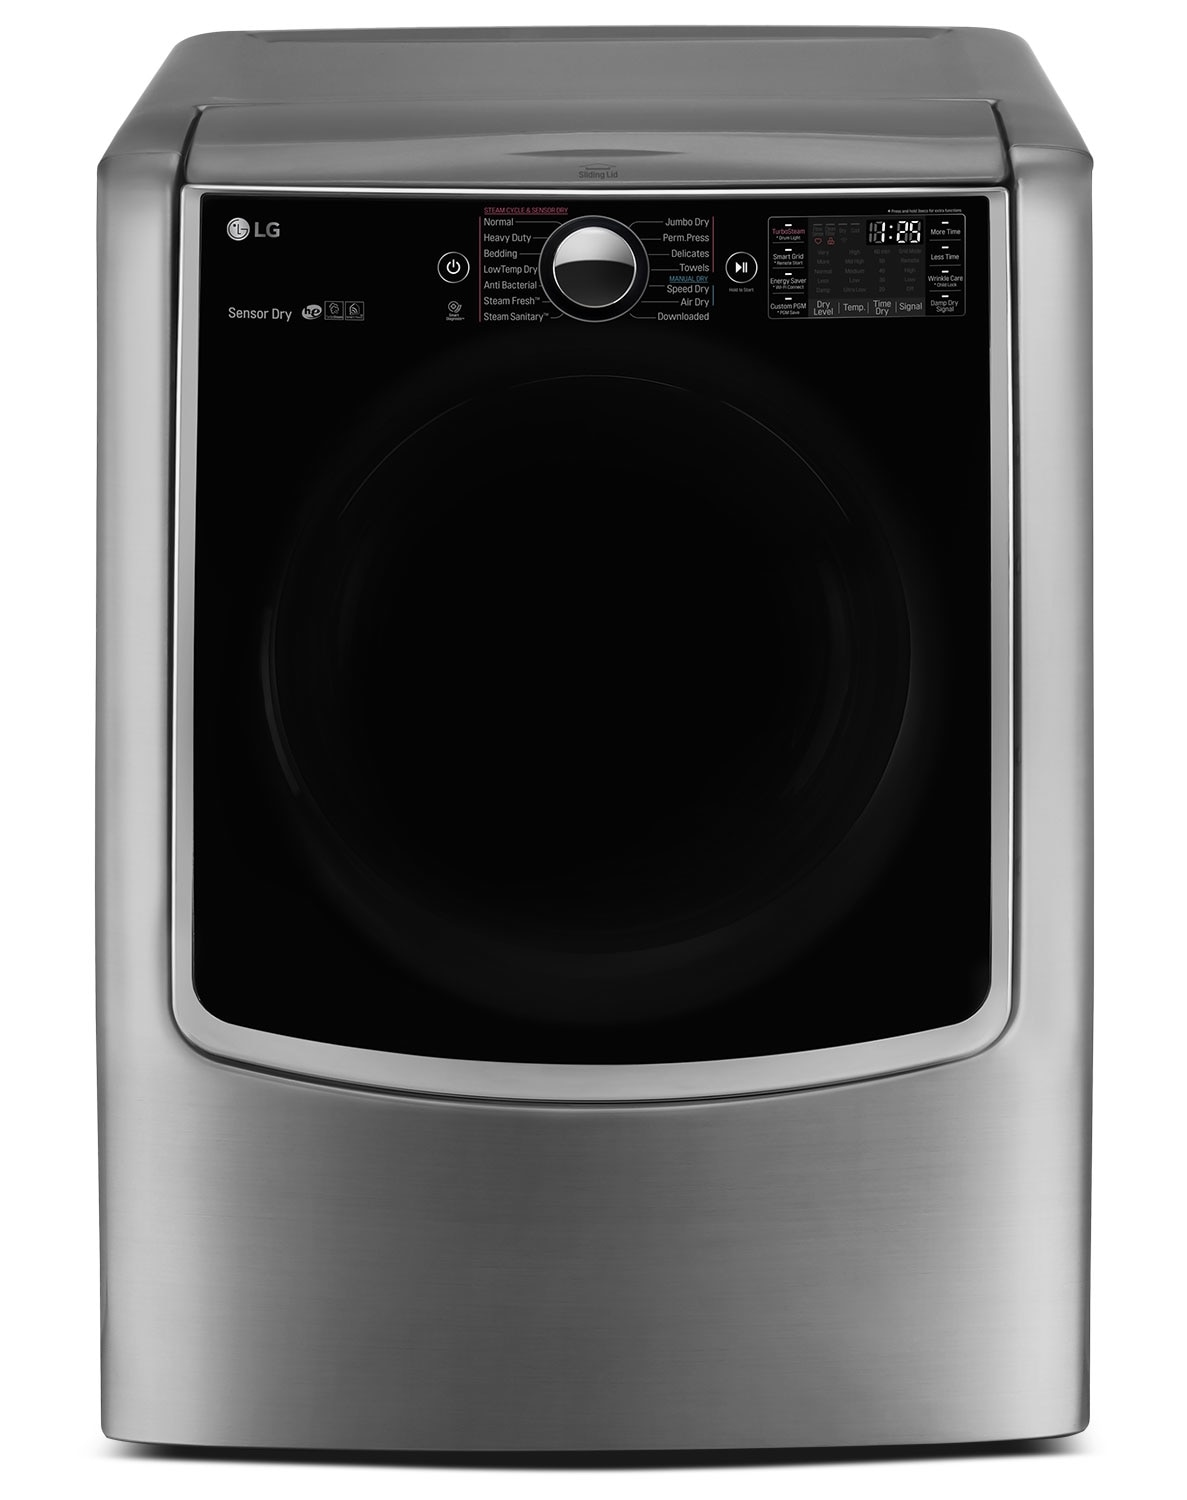 LG 9.0 Cu. Ft. Mega Capacity Electric Steam Dryer – Graphite Steel